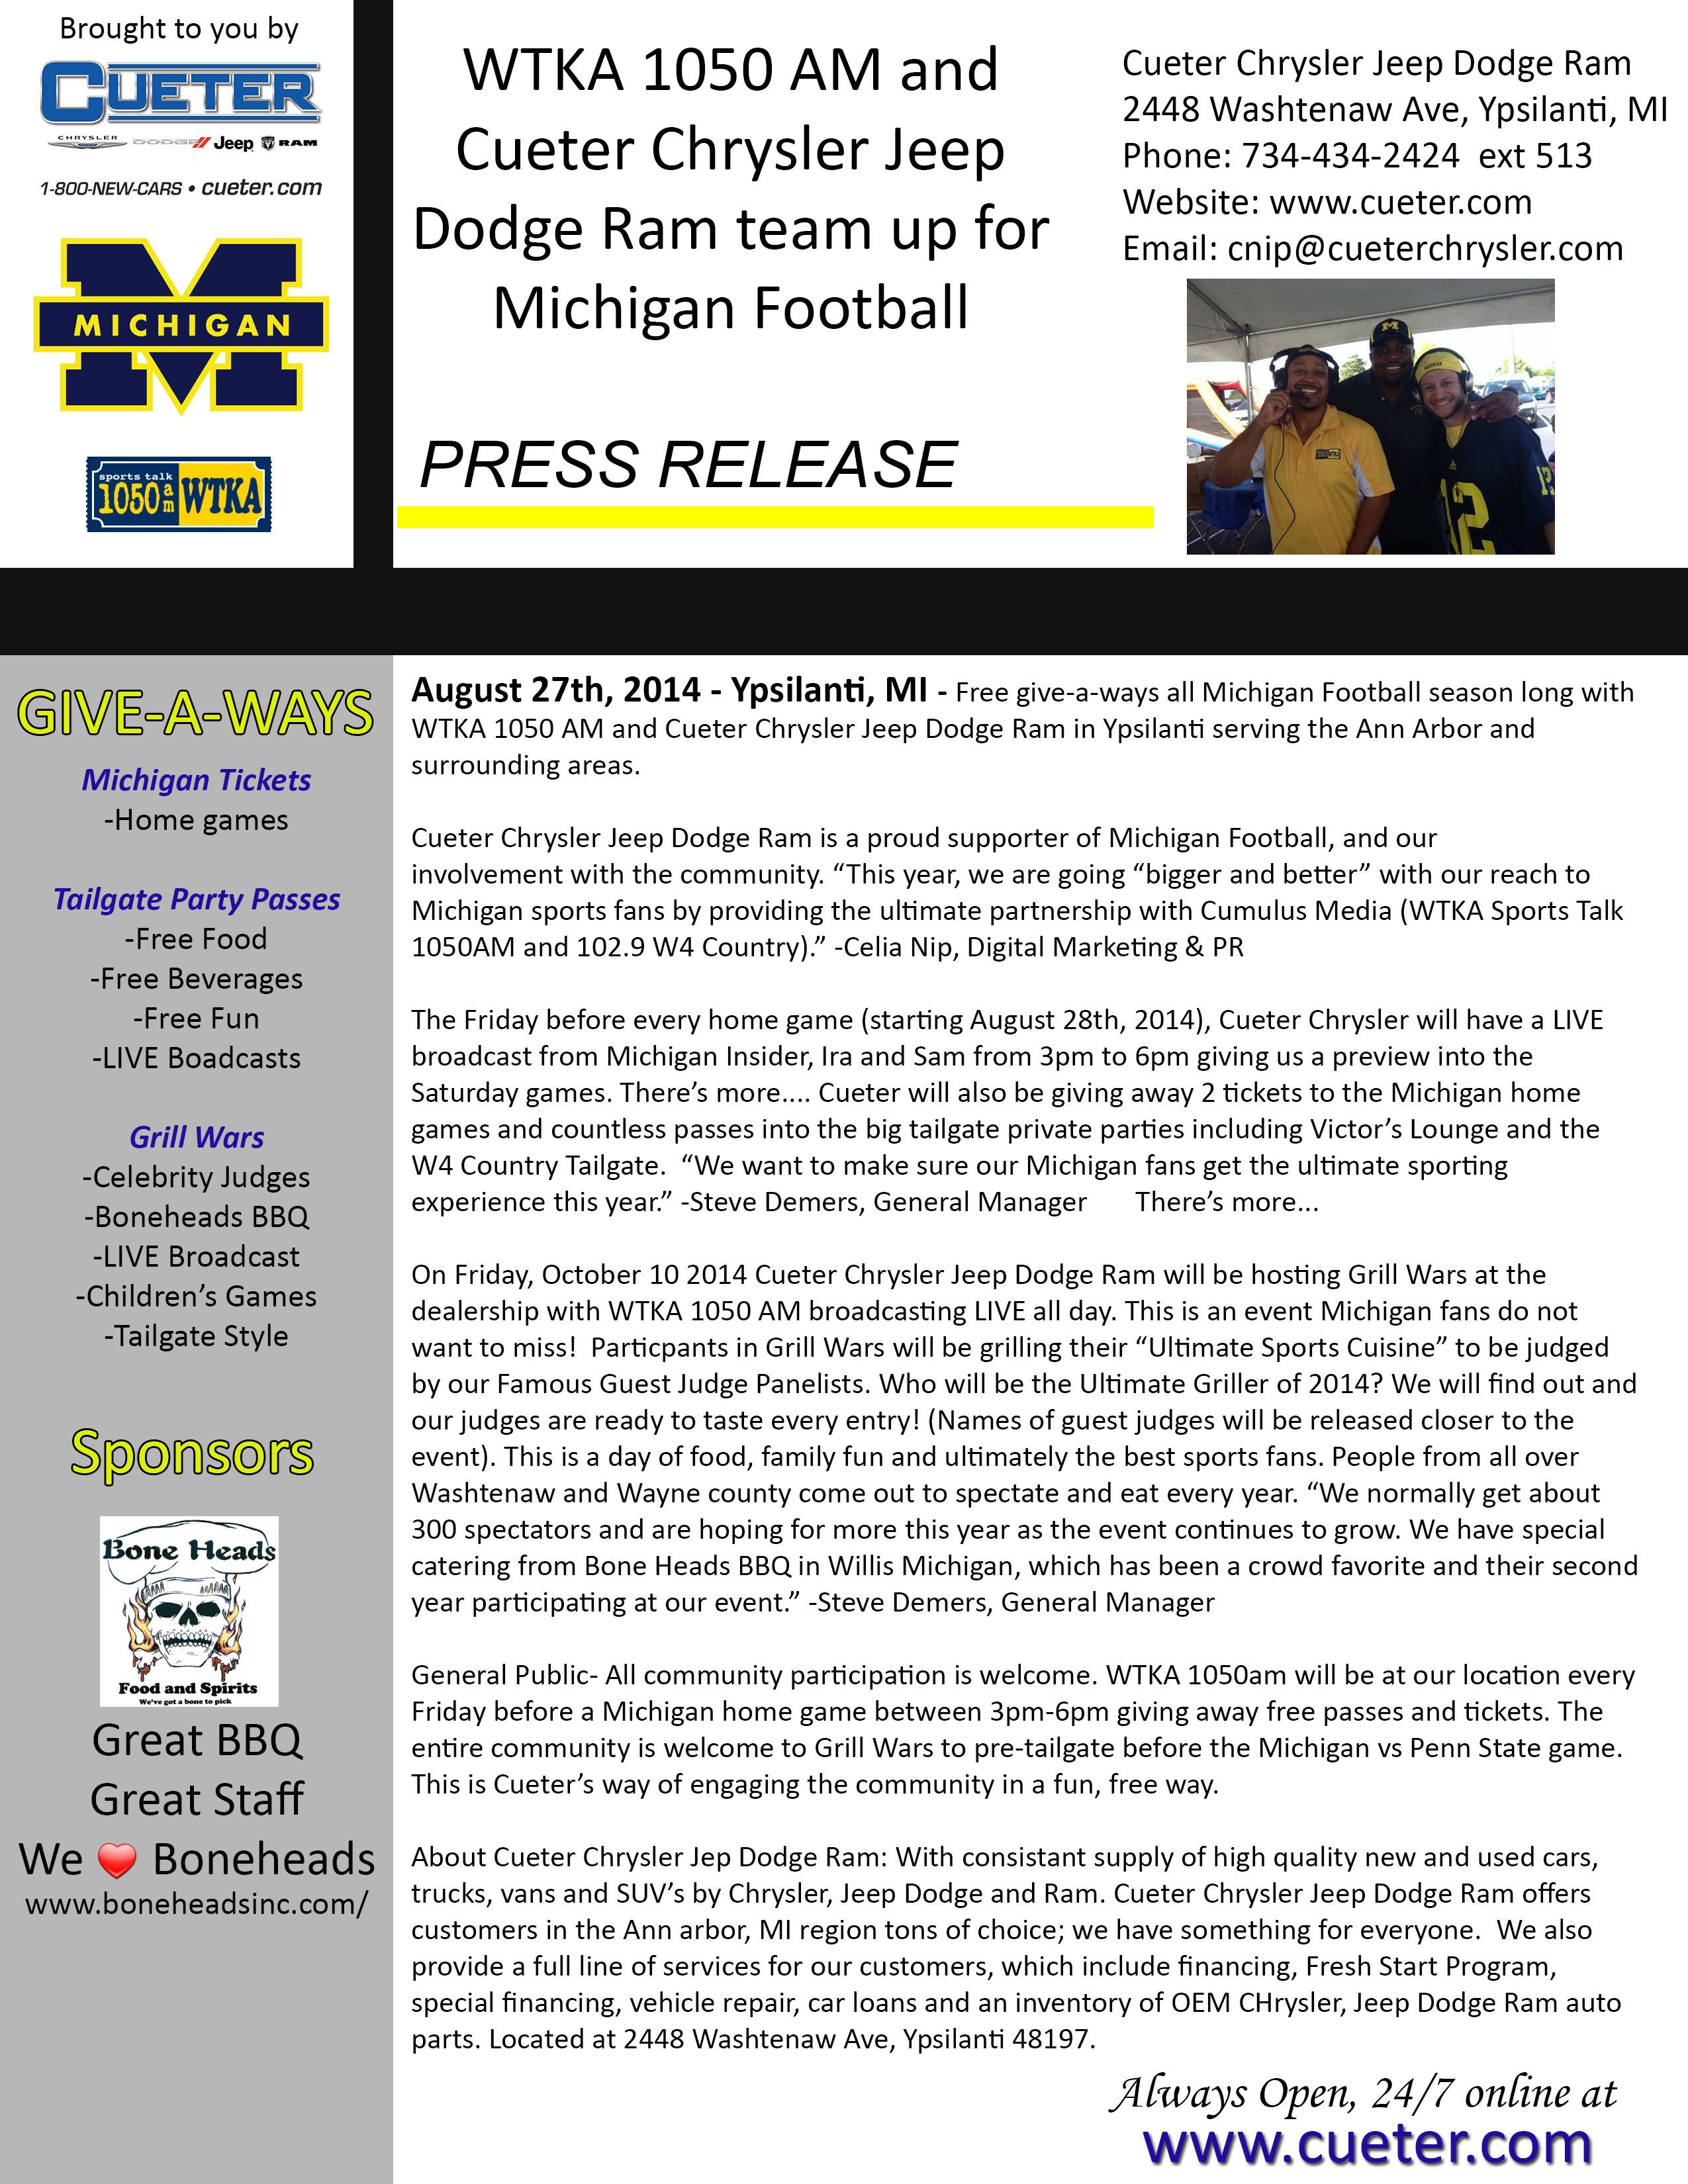 WTKA 1050AM And Cueter Chrysler Jeep Dodge Ram Team Up For Michigan Football